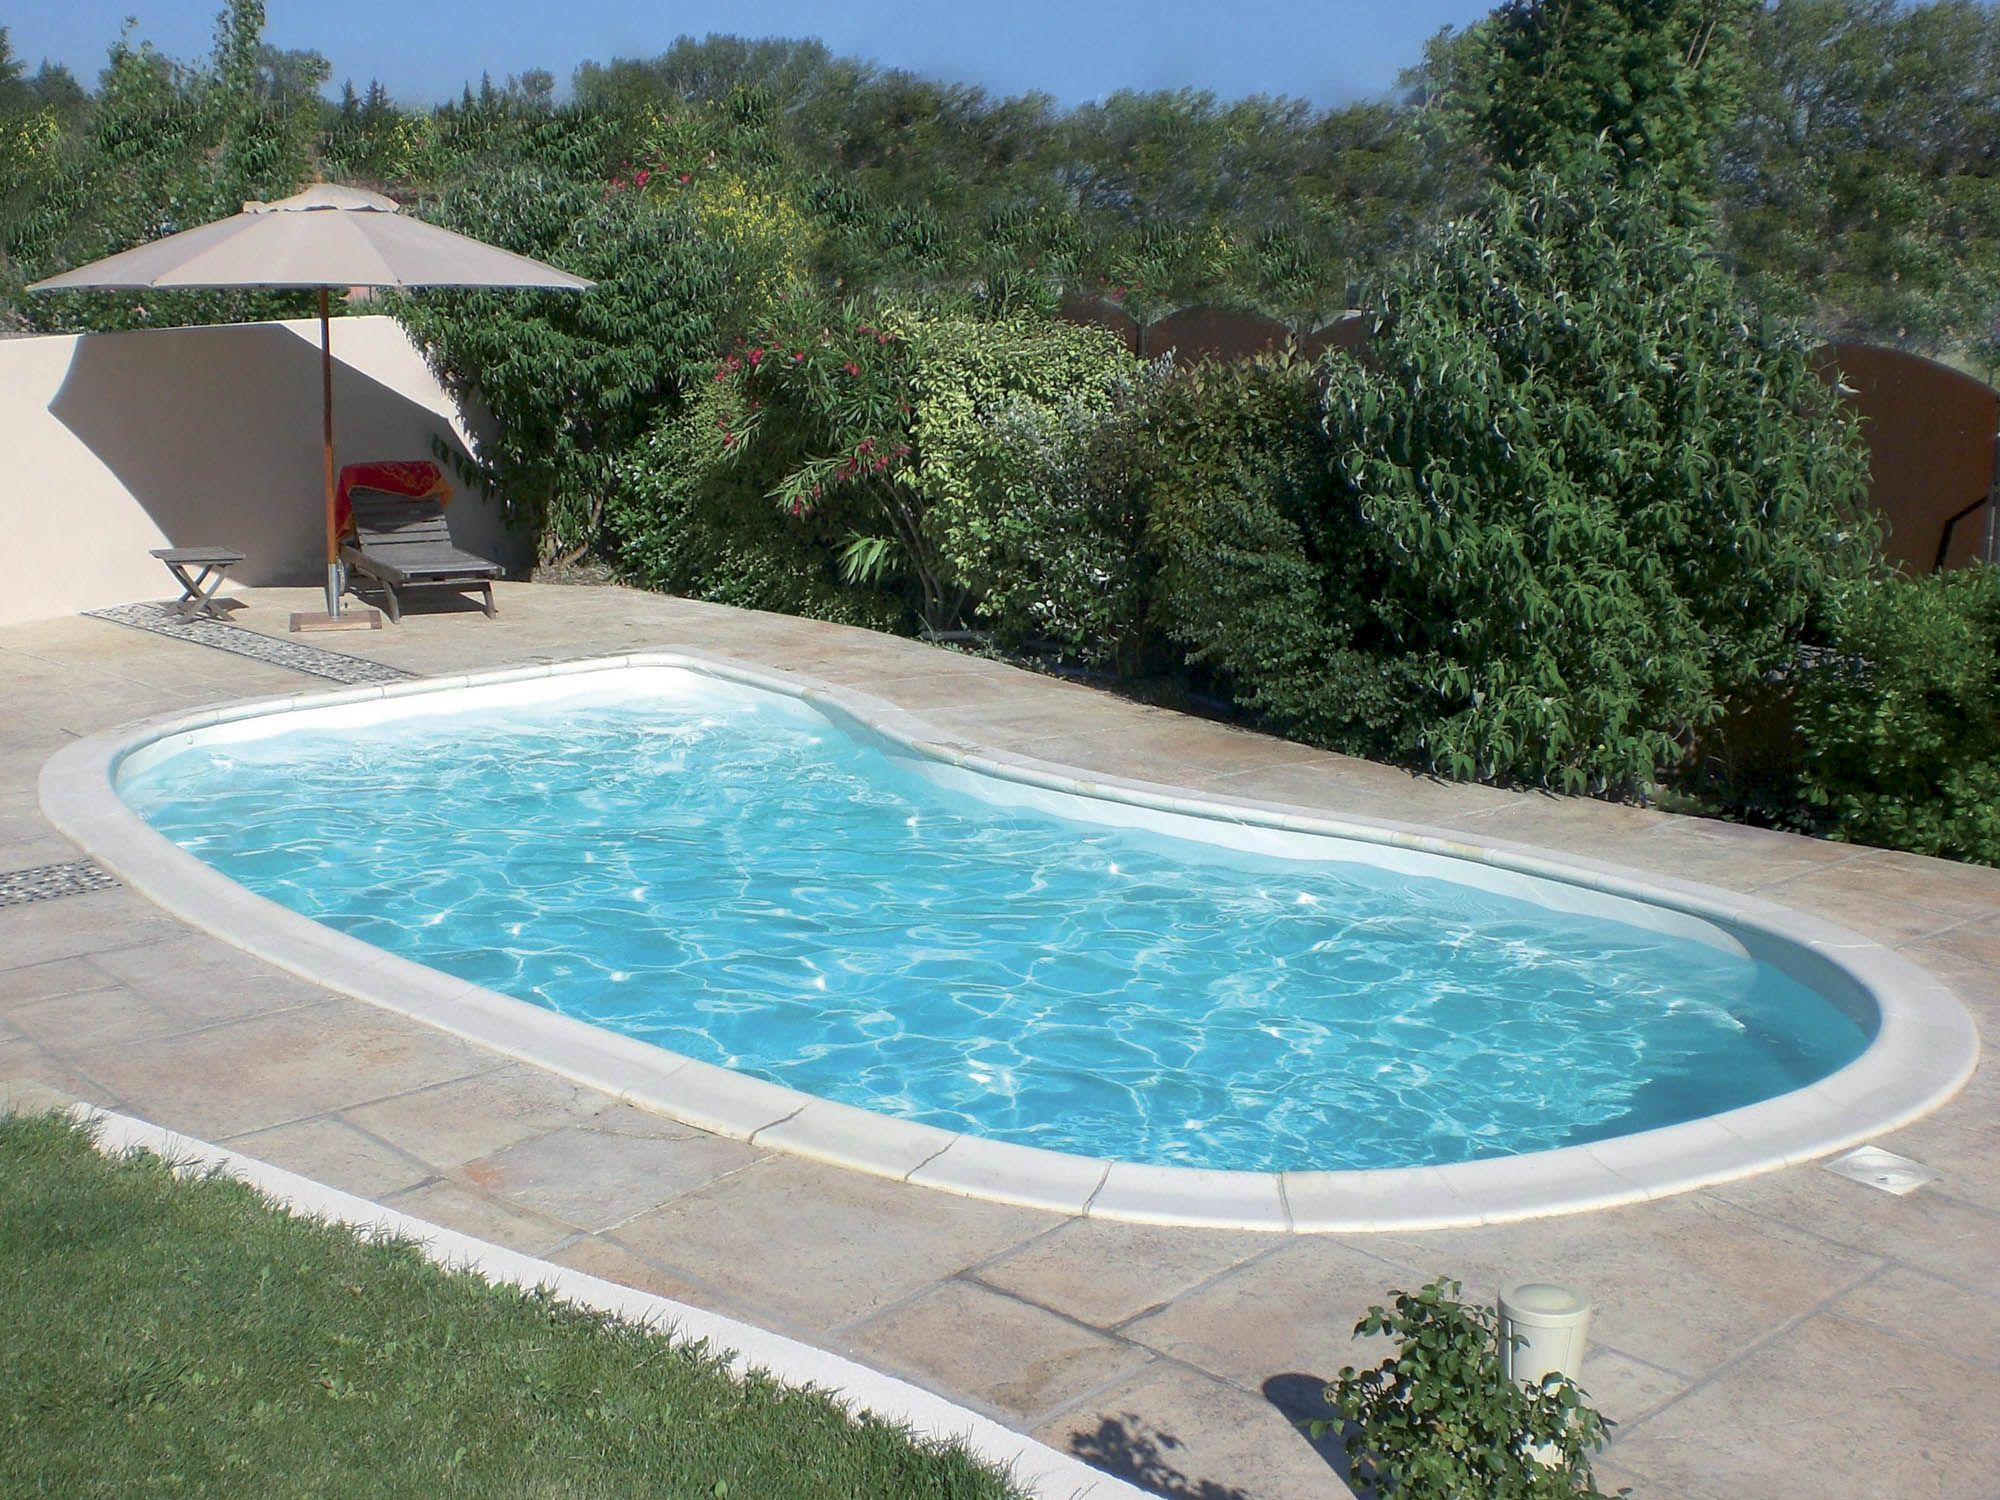 Piscine coque polyester ovation piscine haricot for Coque piscine solde